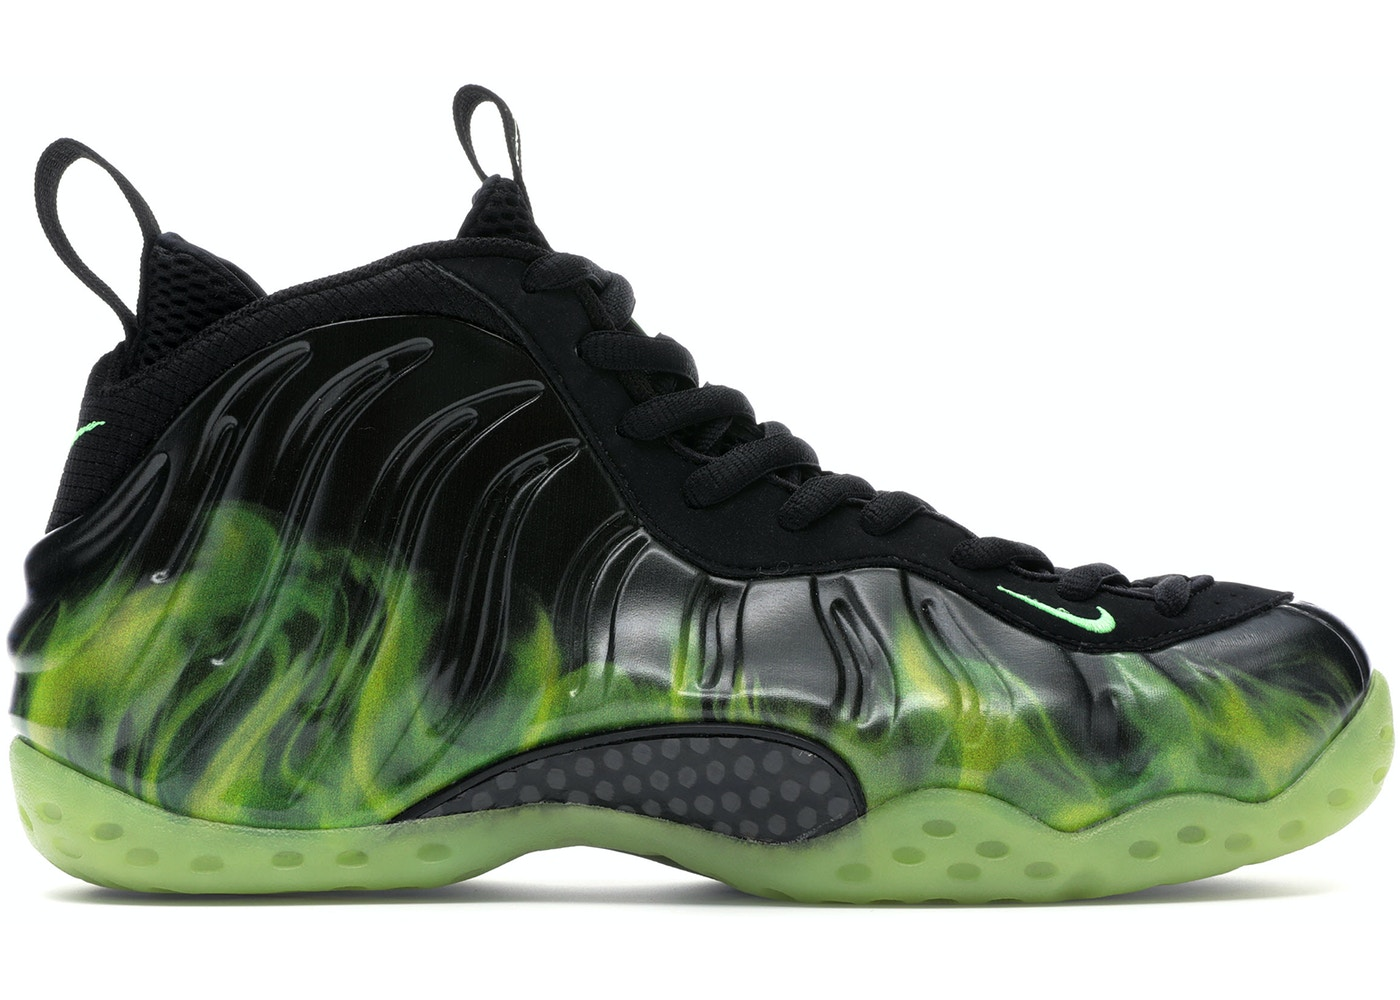 best sneakers a395a 6d9de Air Foamposite One ParaNorman - 579771-003